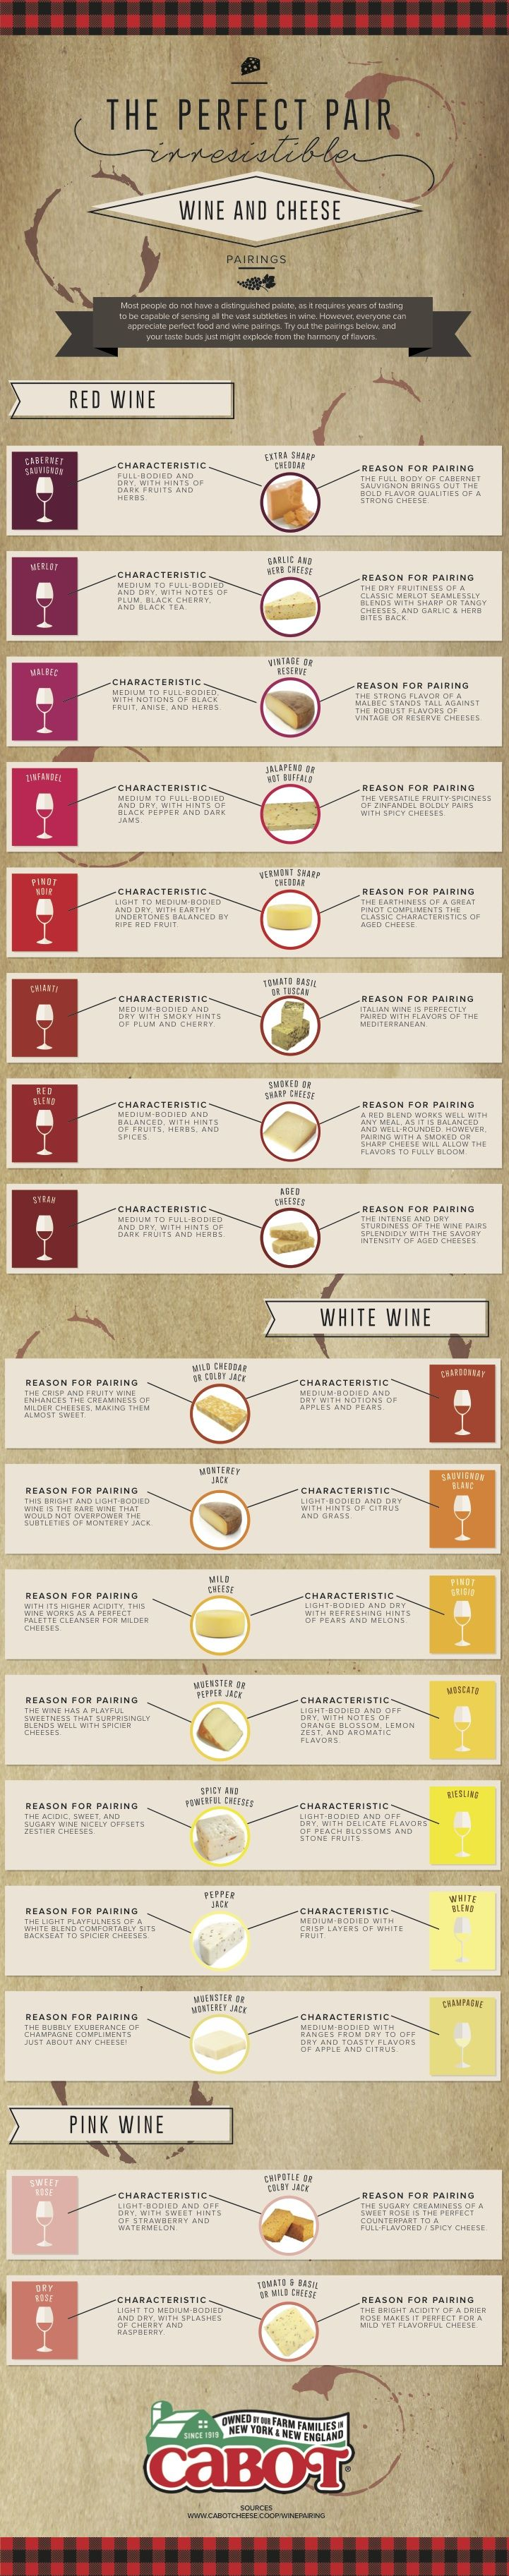 Irresistible Wine and Cheese Pairings